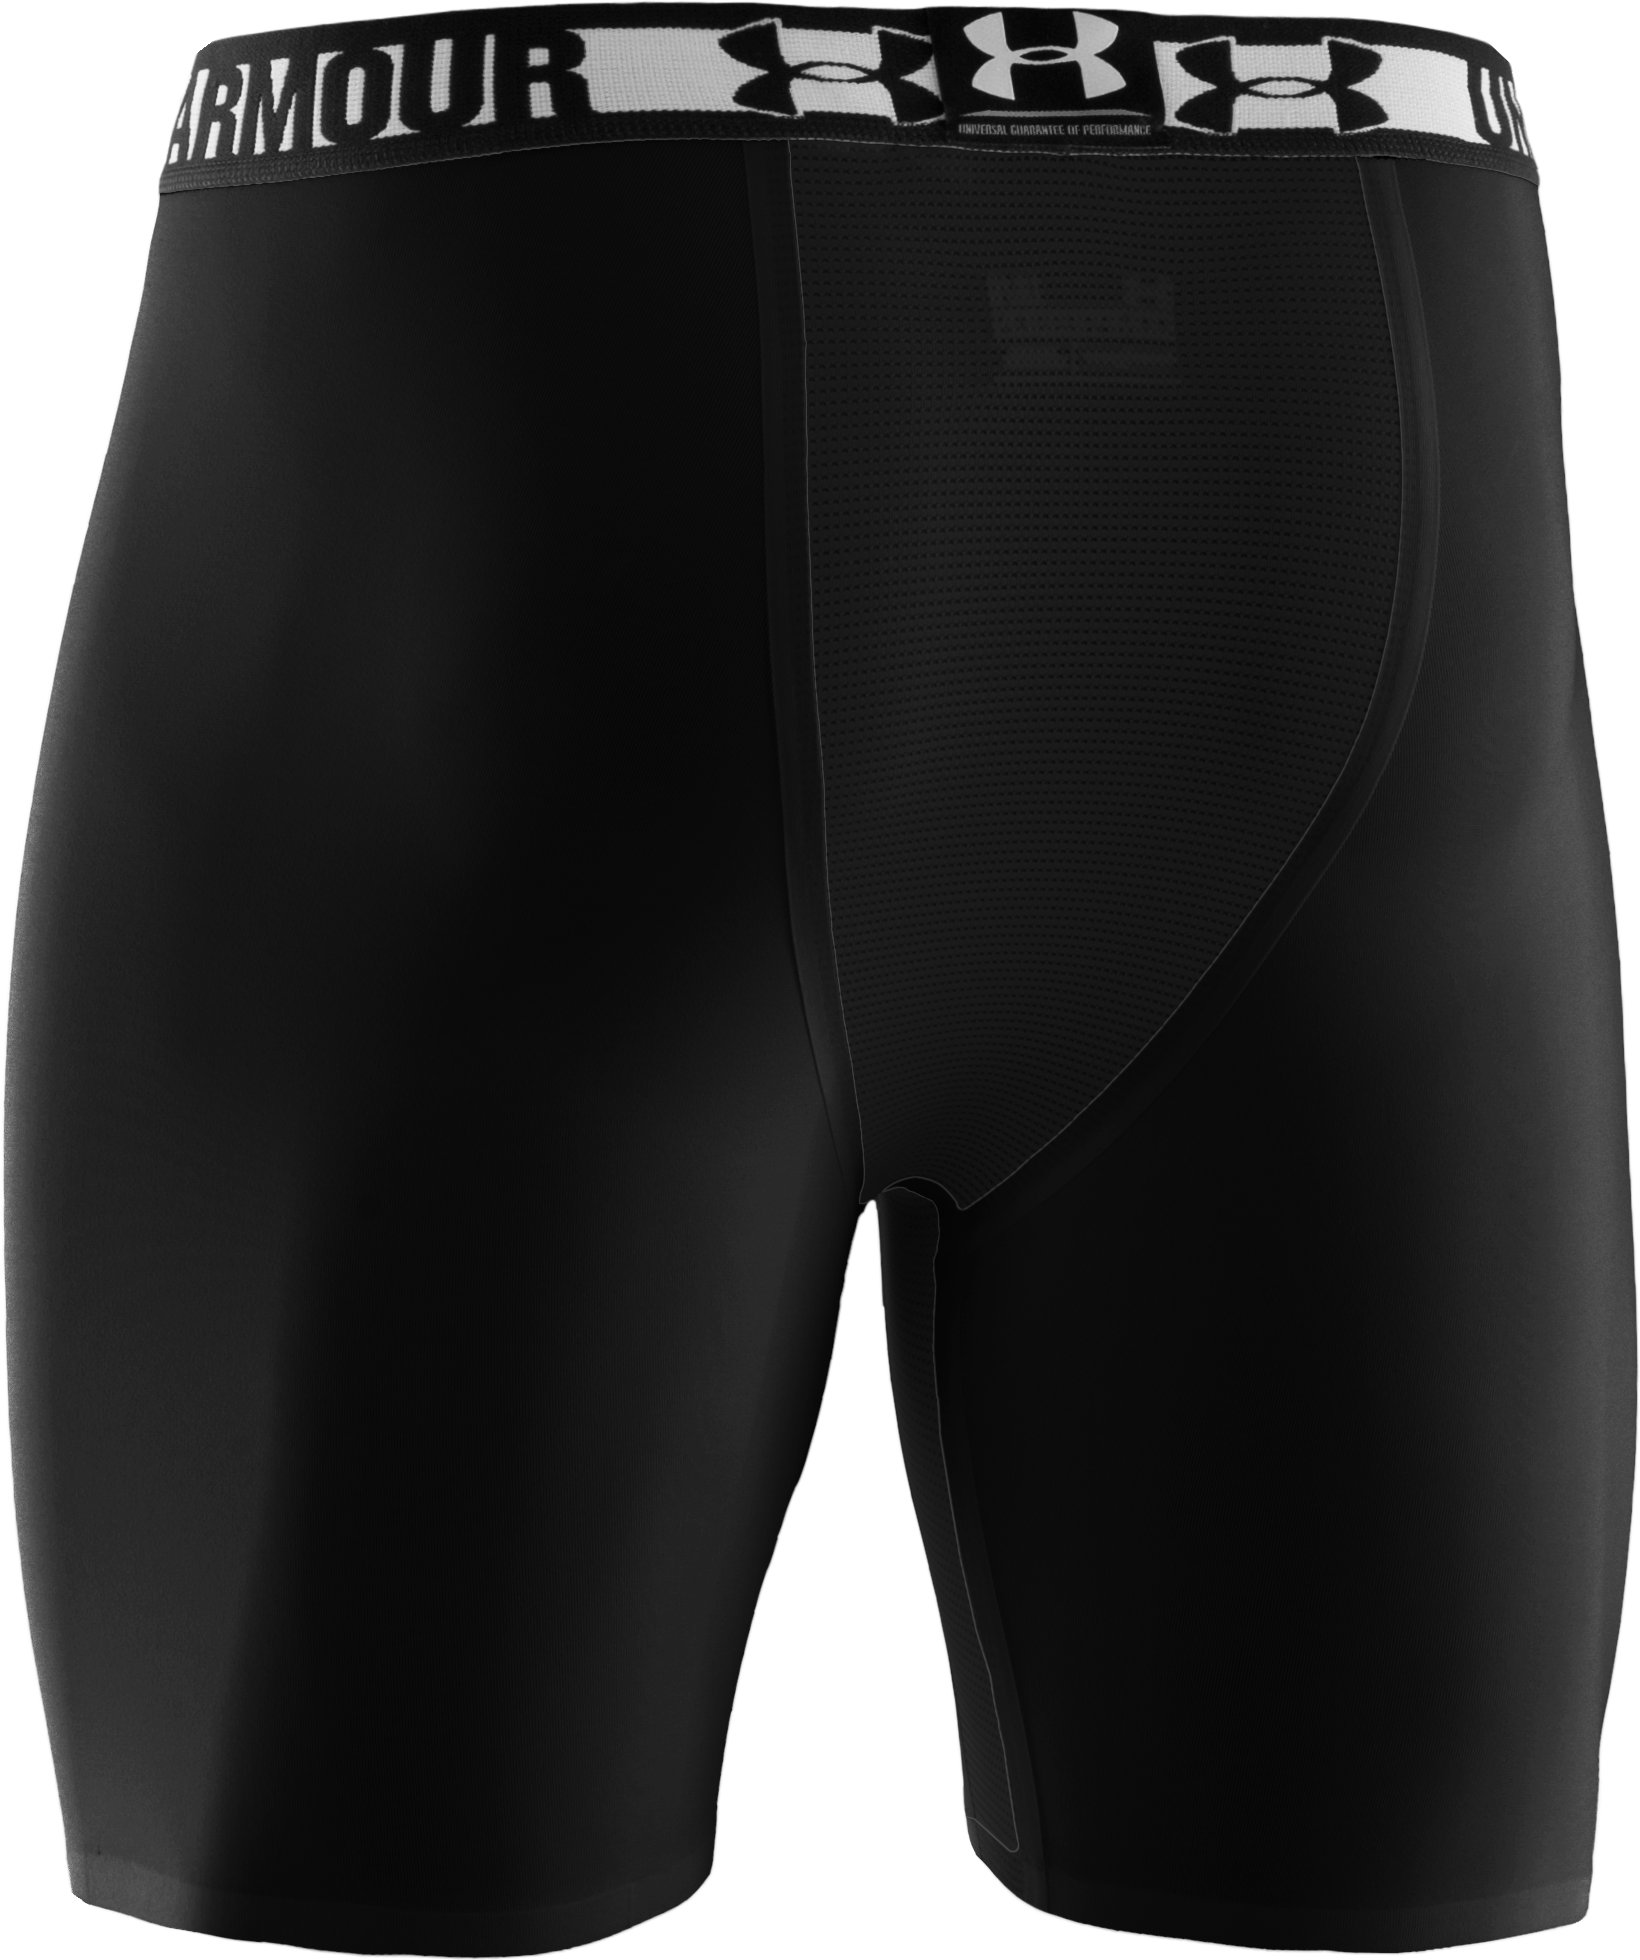 "Men's HeatGear® Dynasty Vented 6"" Compression Shorts, Black"